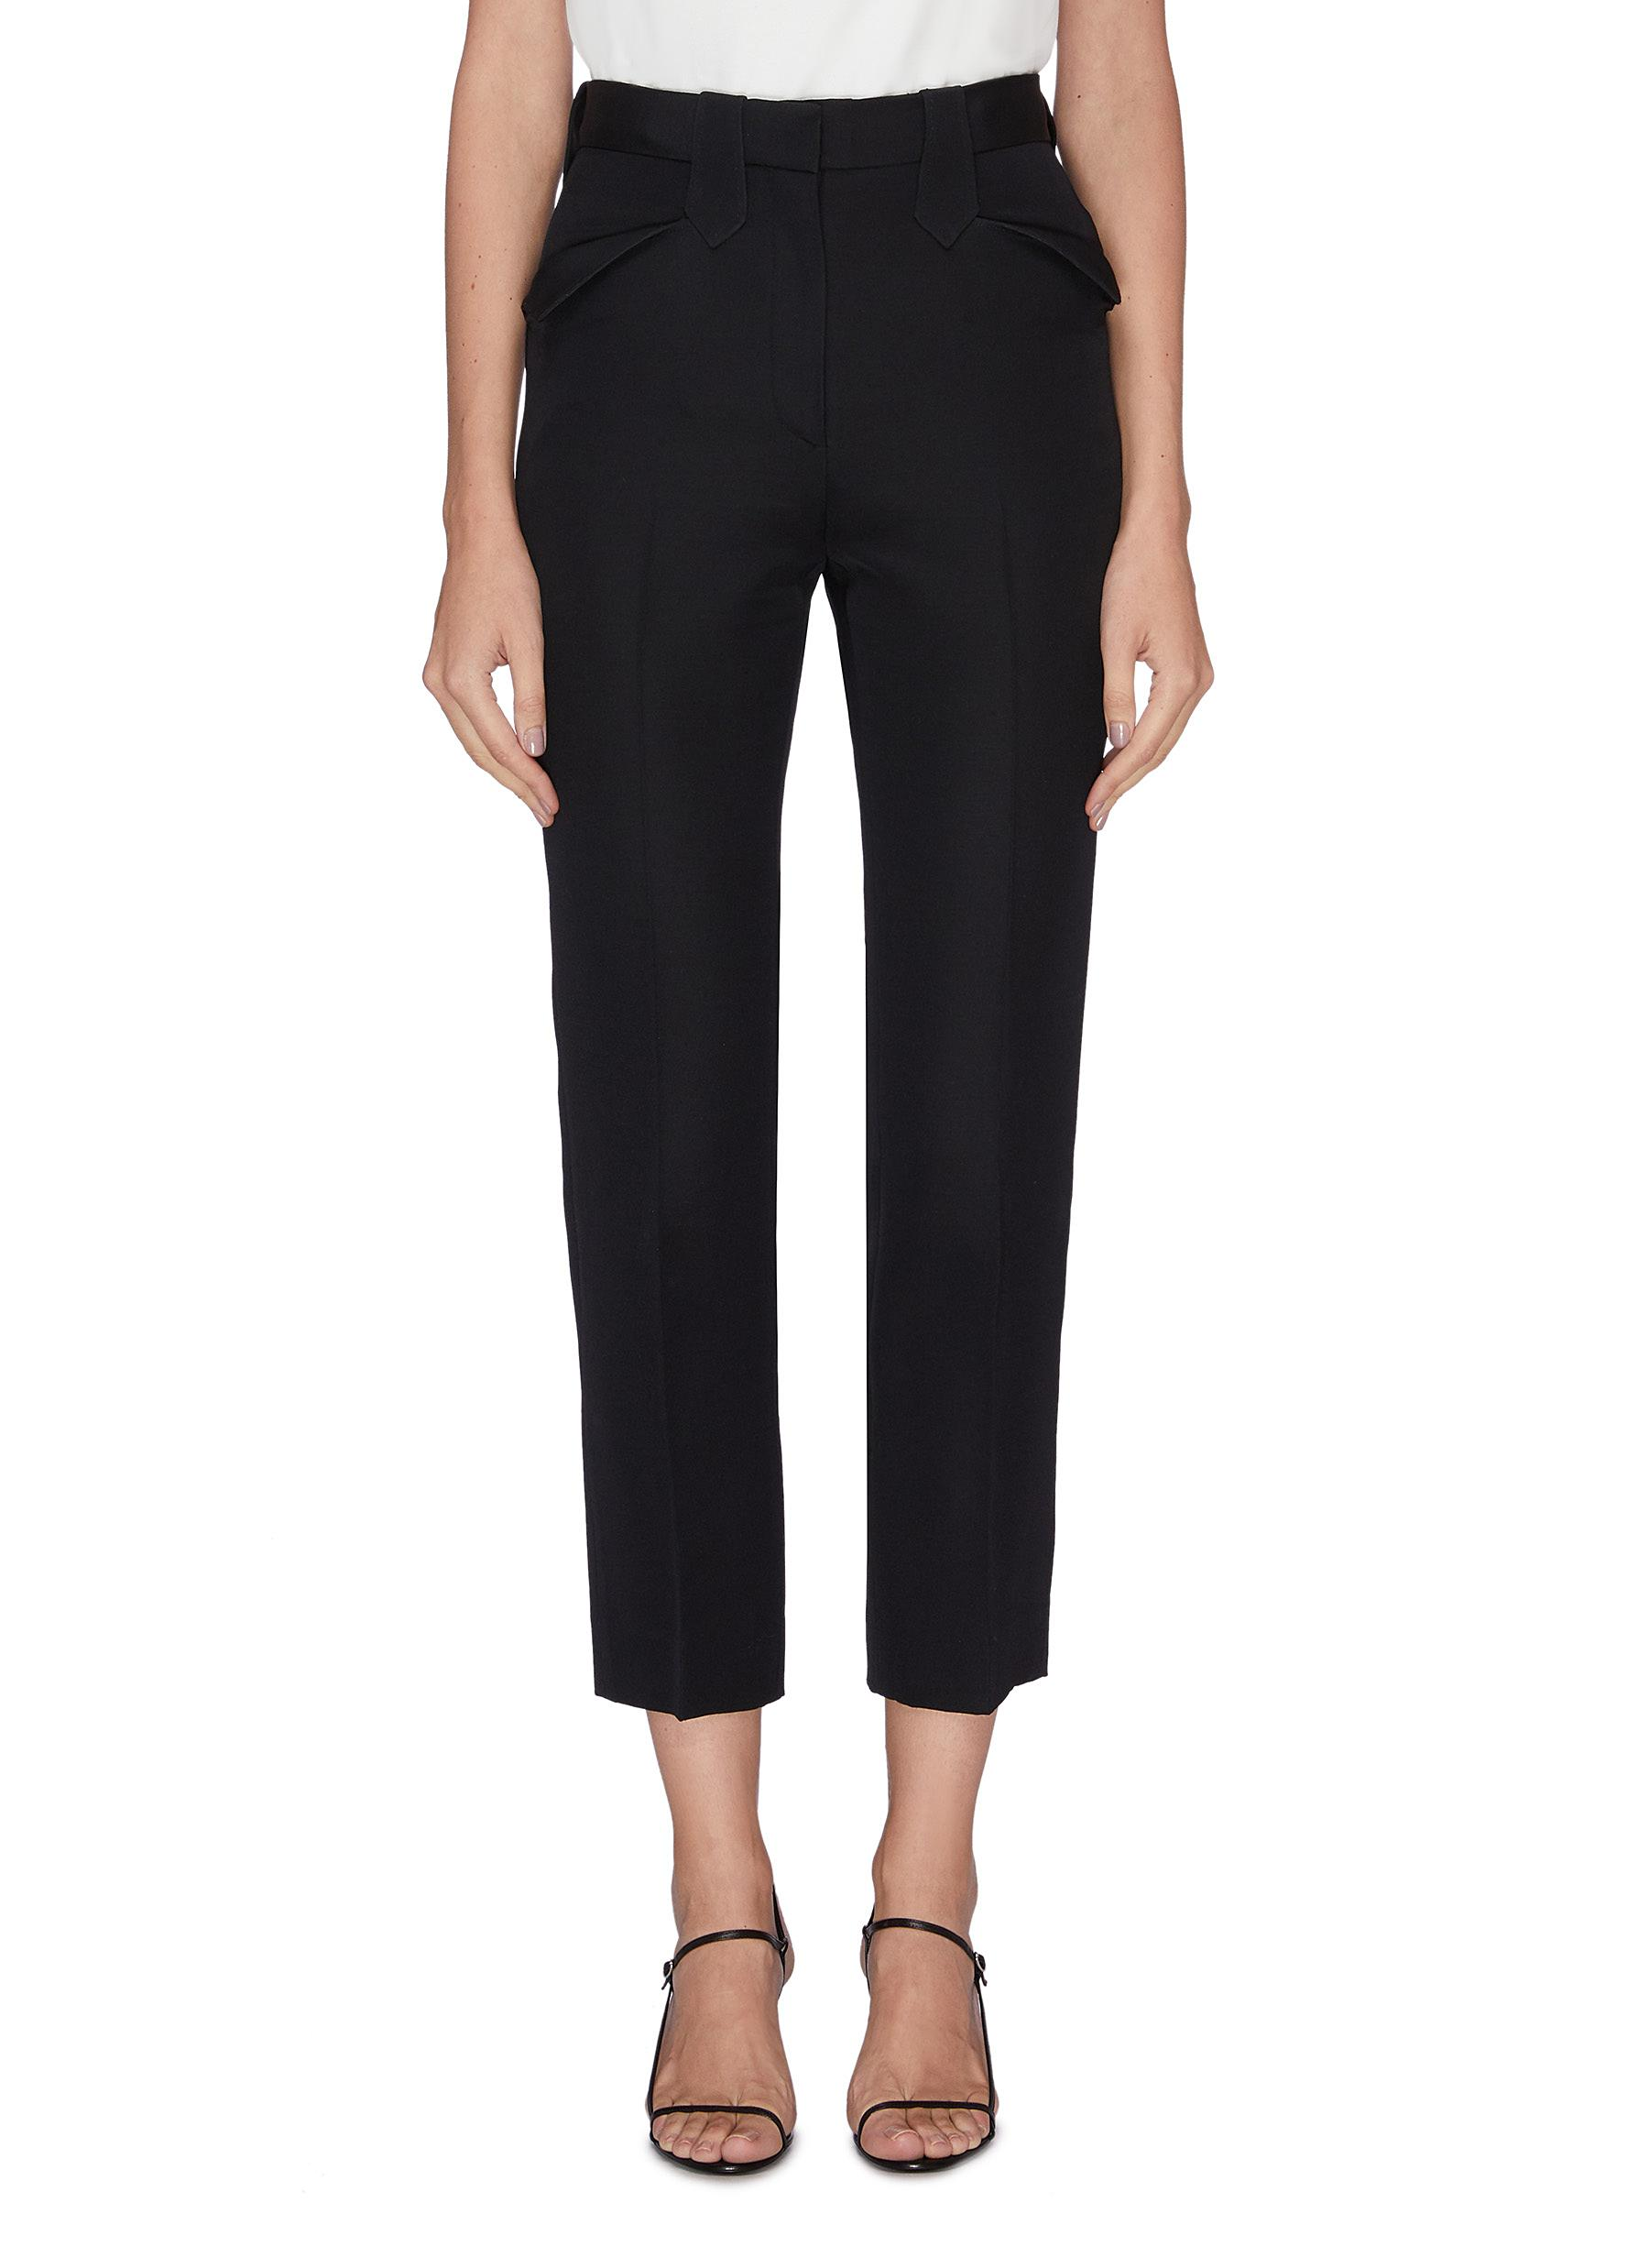 Ben peak pocket cropped suiting pants by The Row